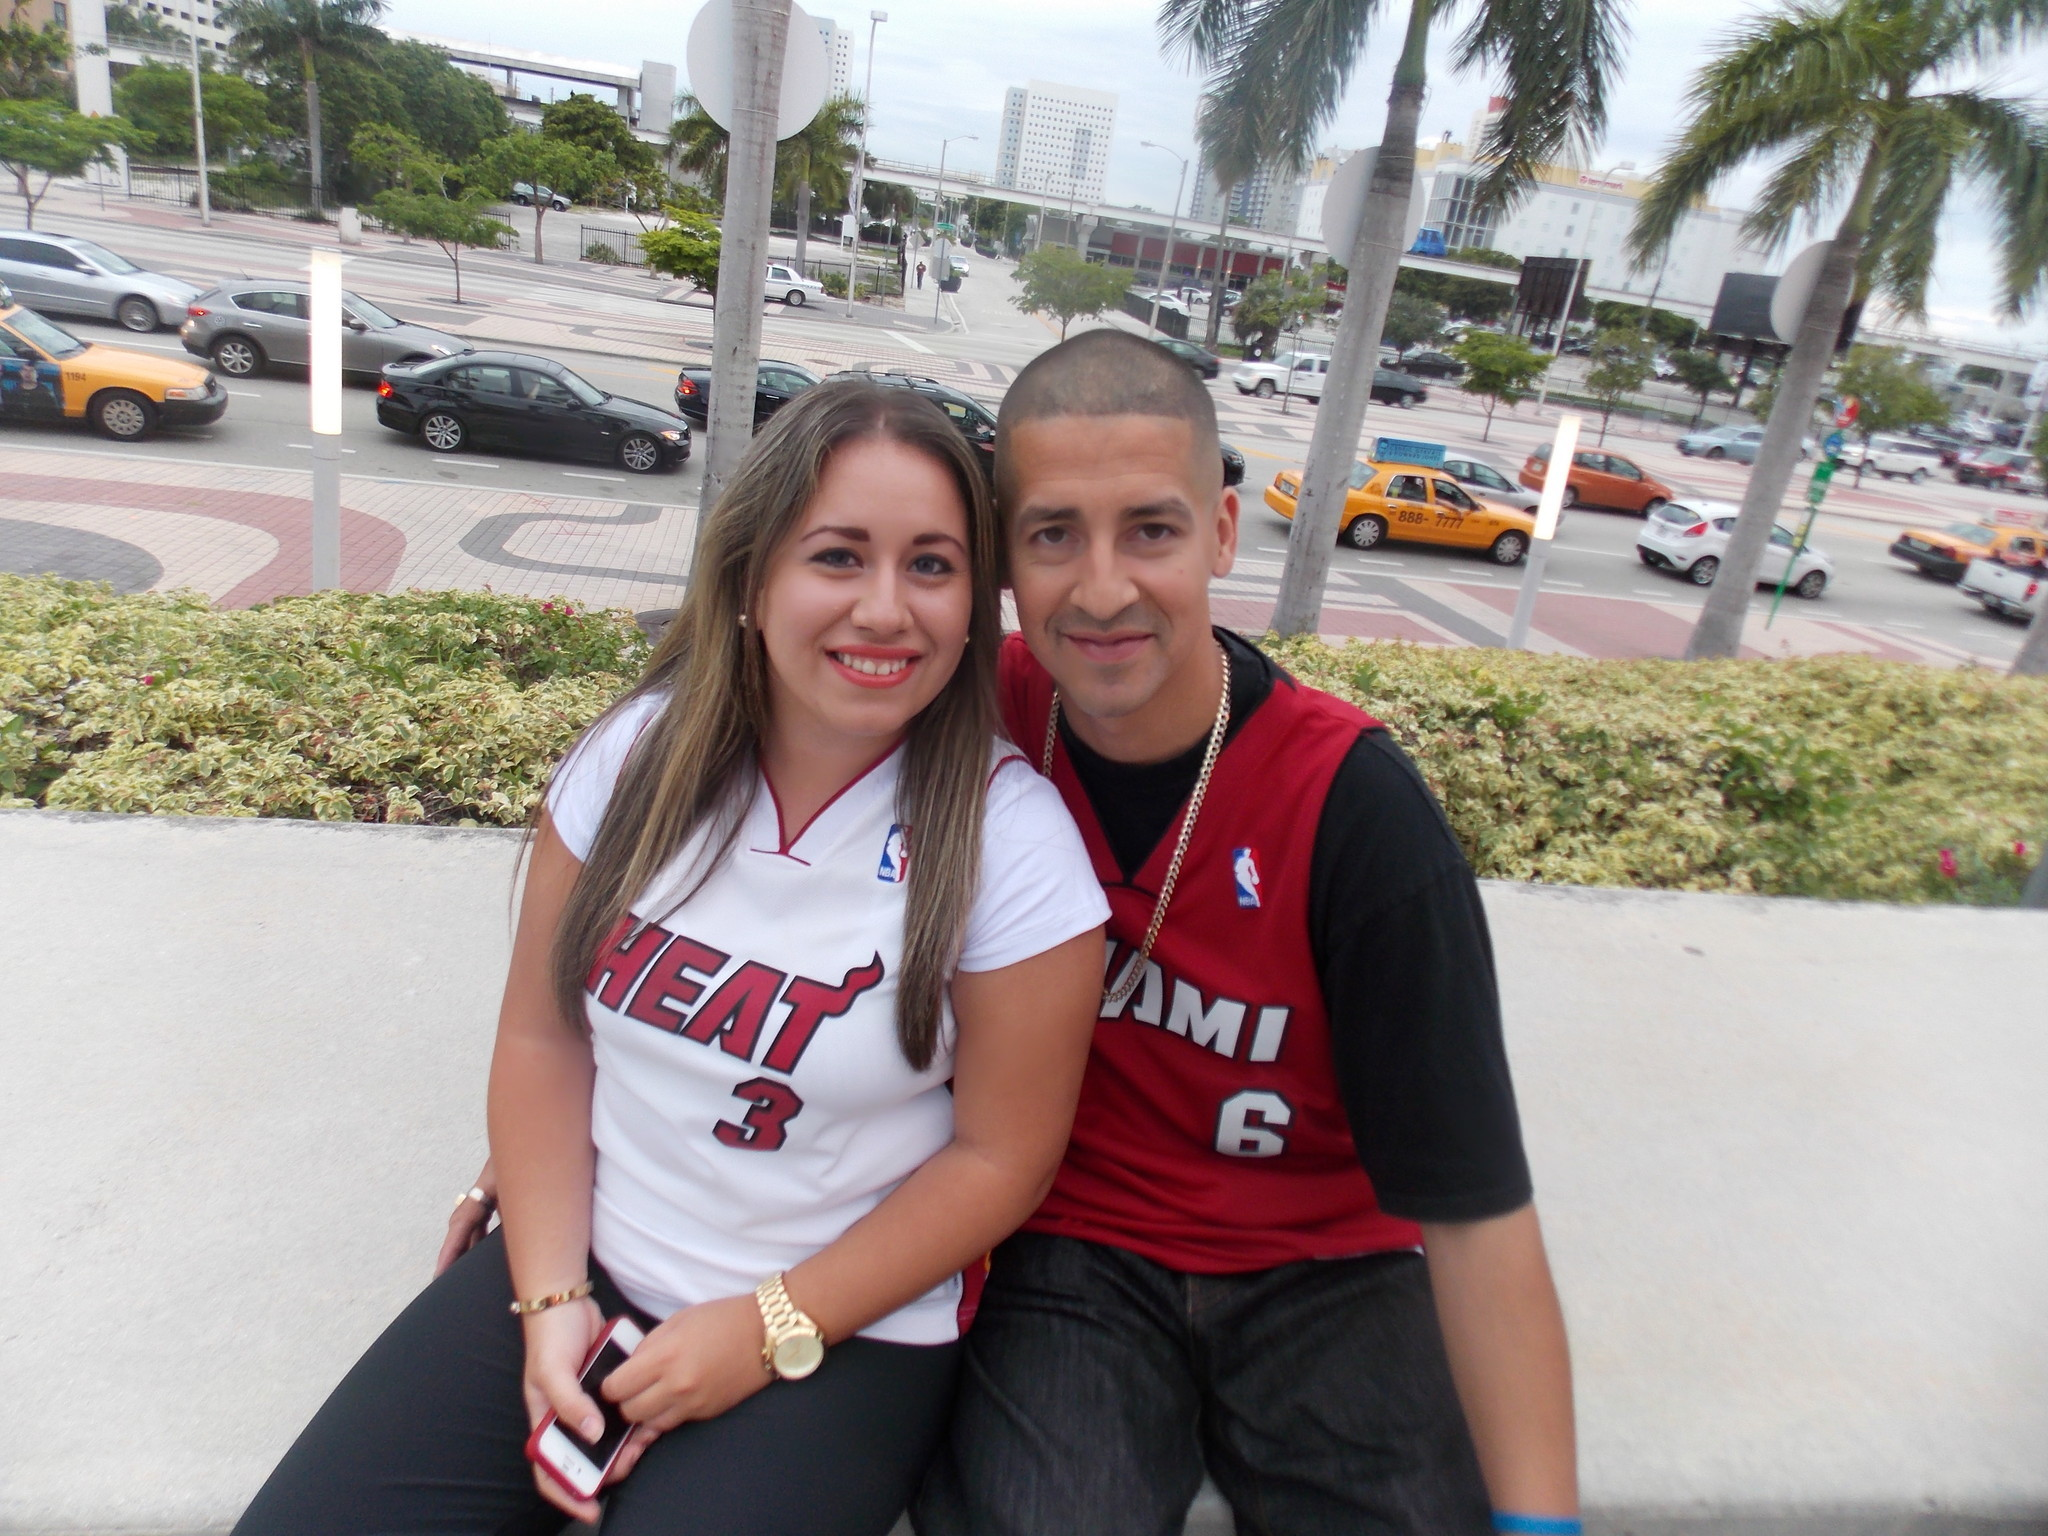 Photos: White Hot Heat Fans Game 5 - White Hot Fans